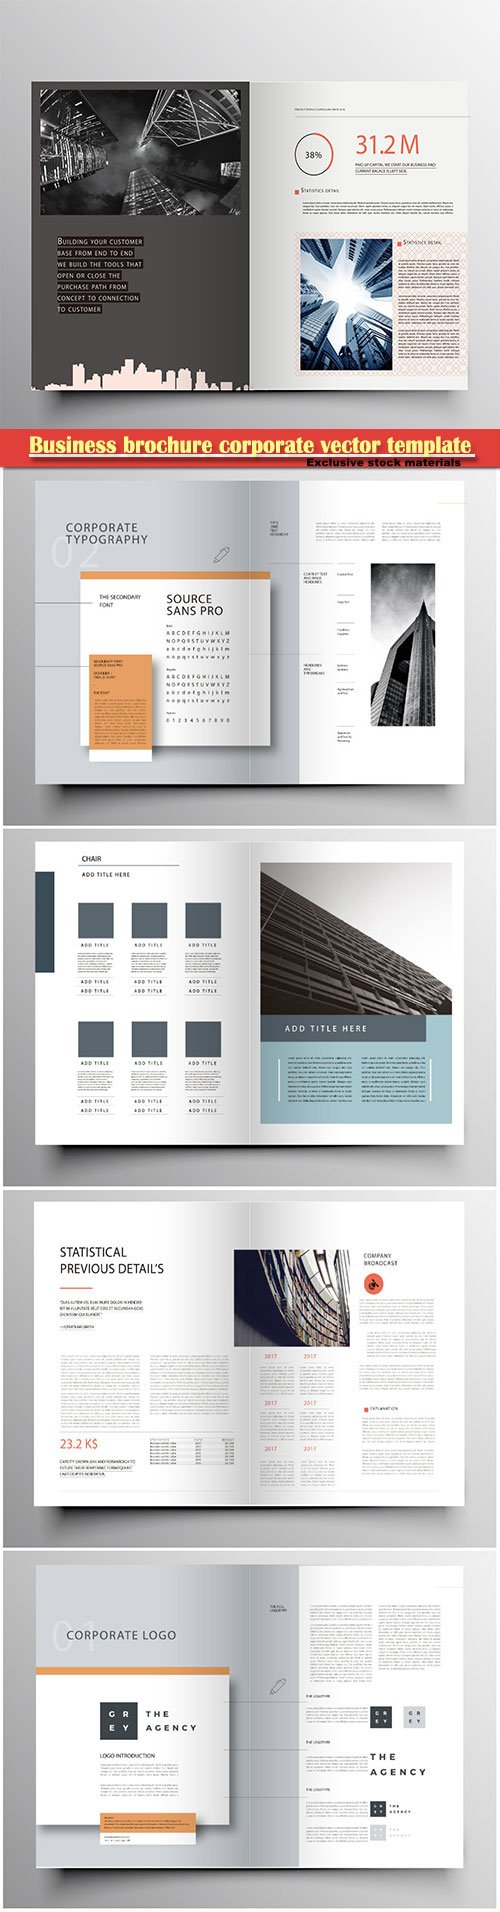 Business brochure corporate vector template, magazine flyer mockup # 48